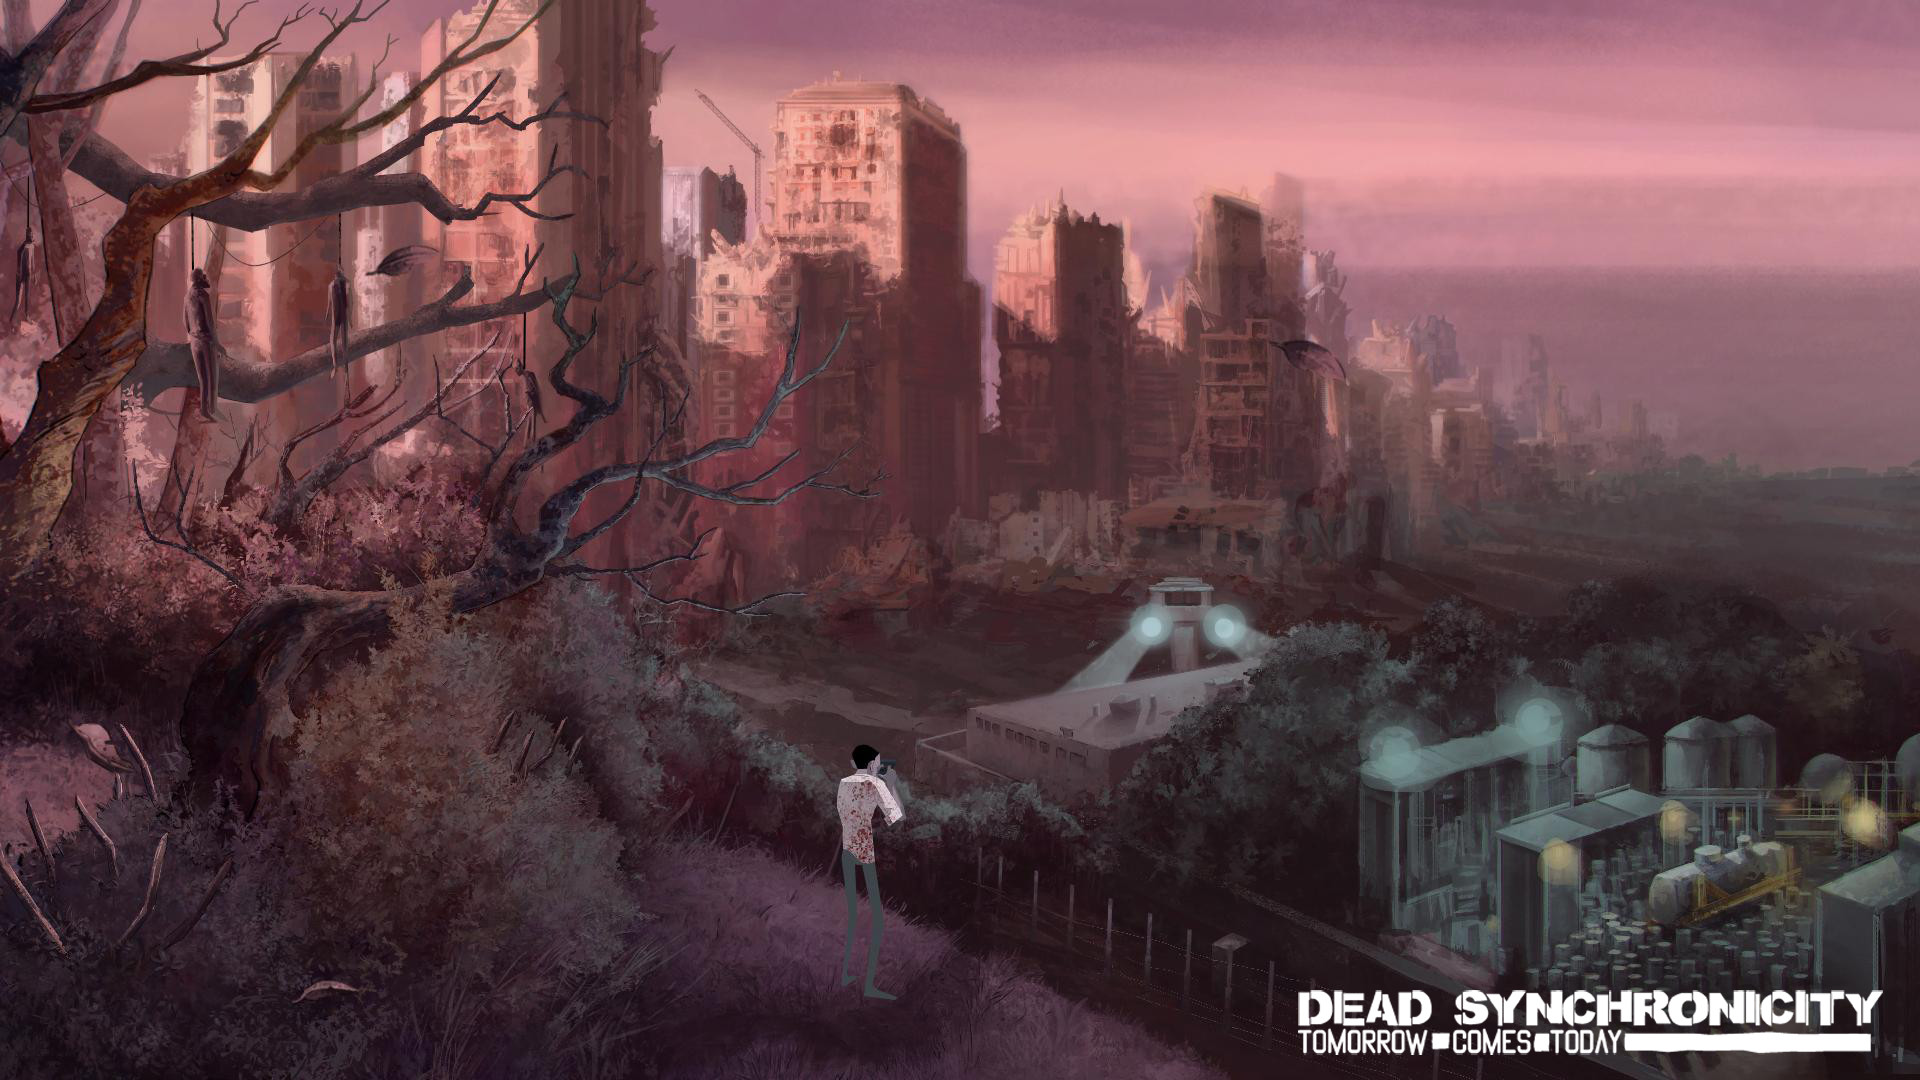 Dead Synchronicity: Tomorrow comes Today - скриншоты